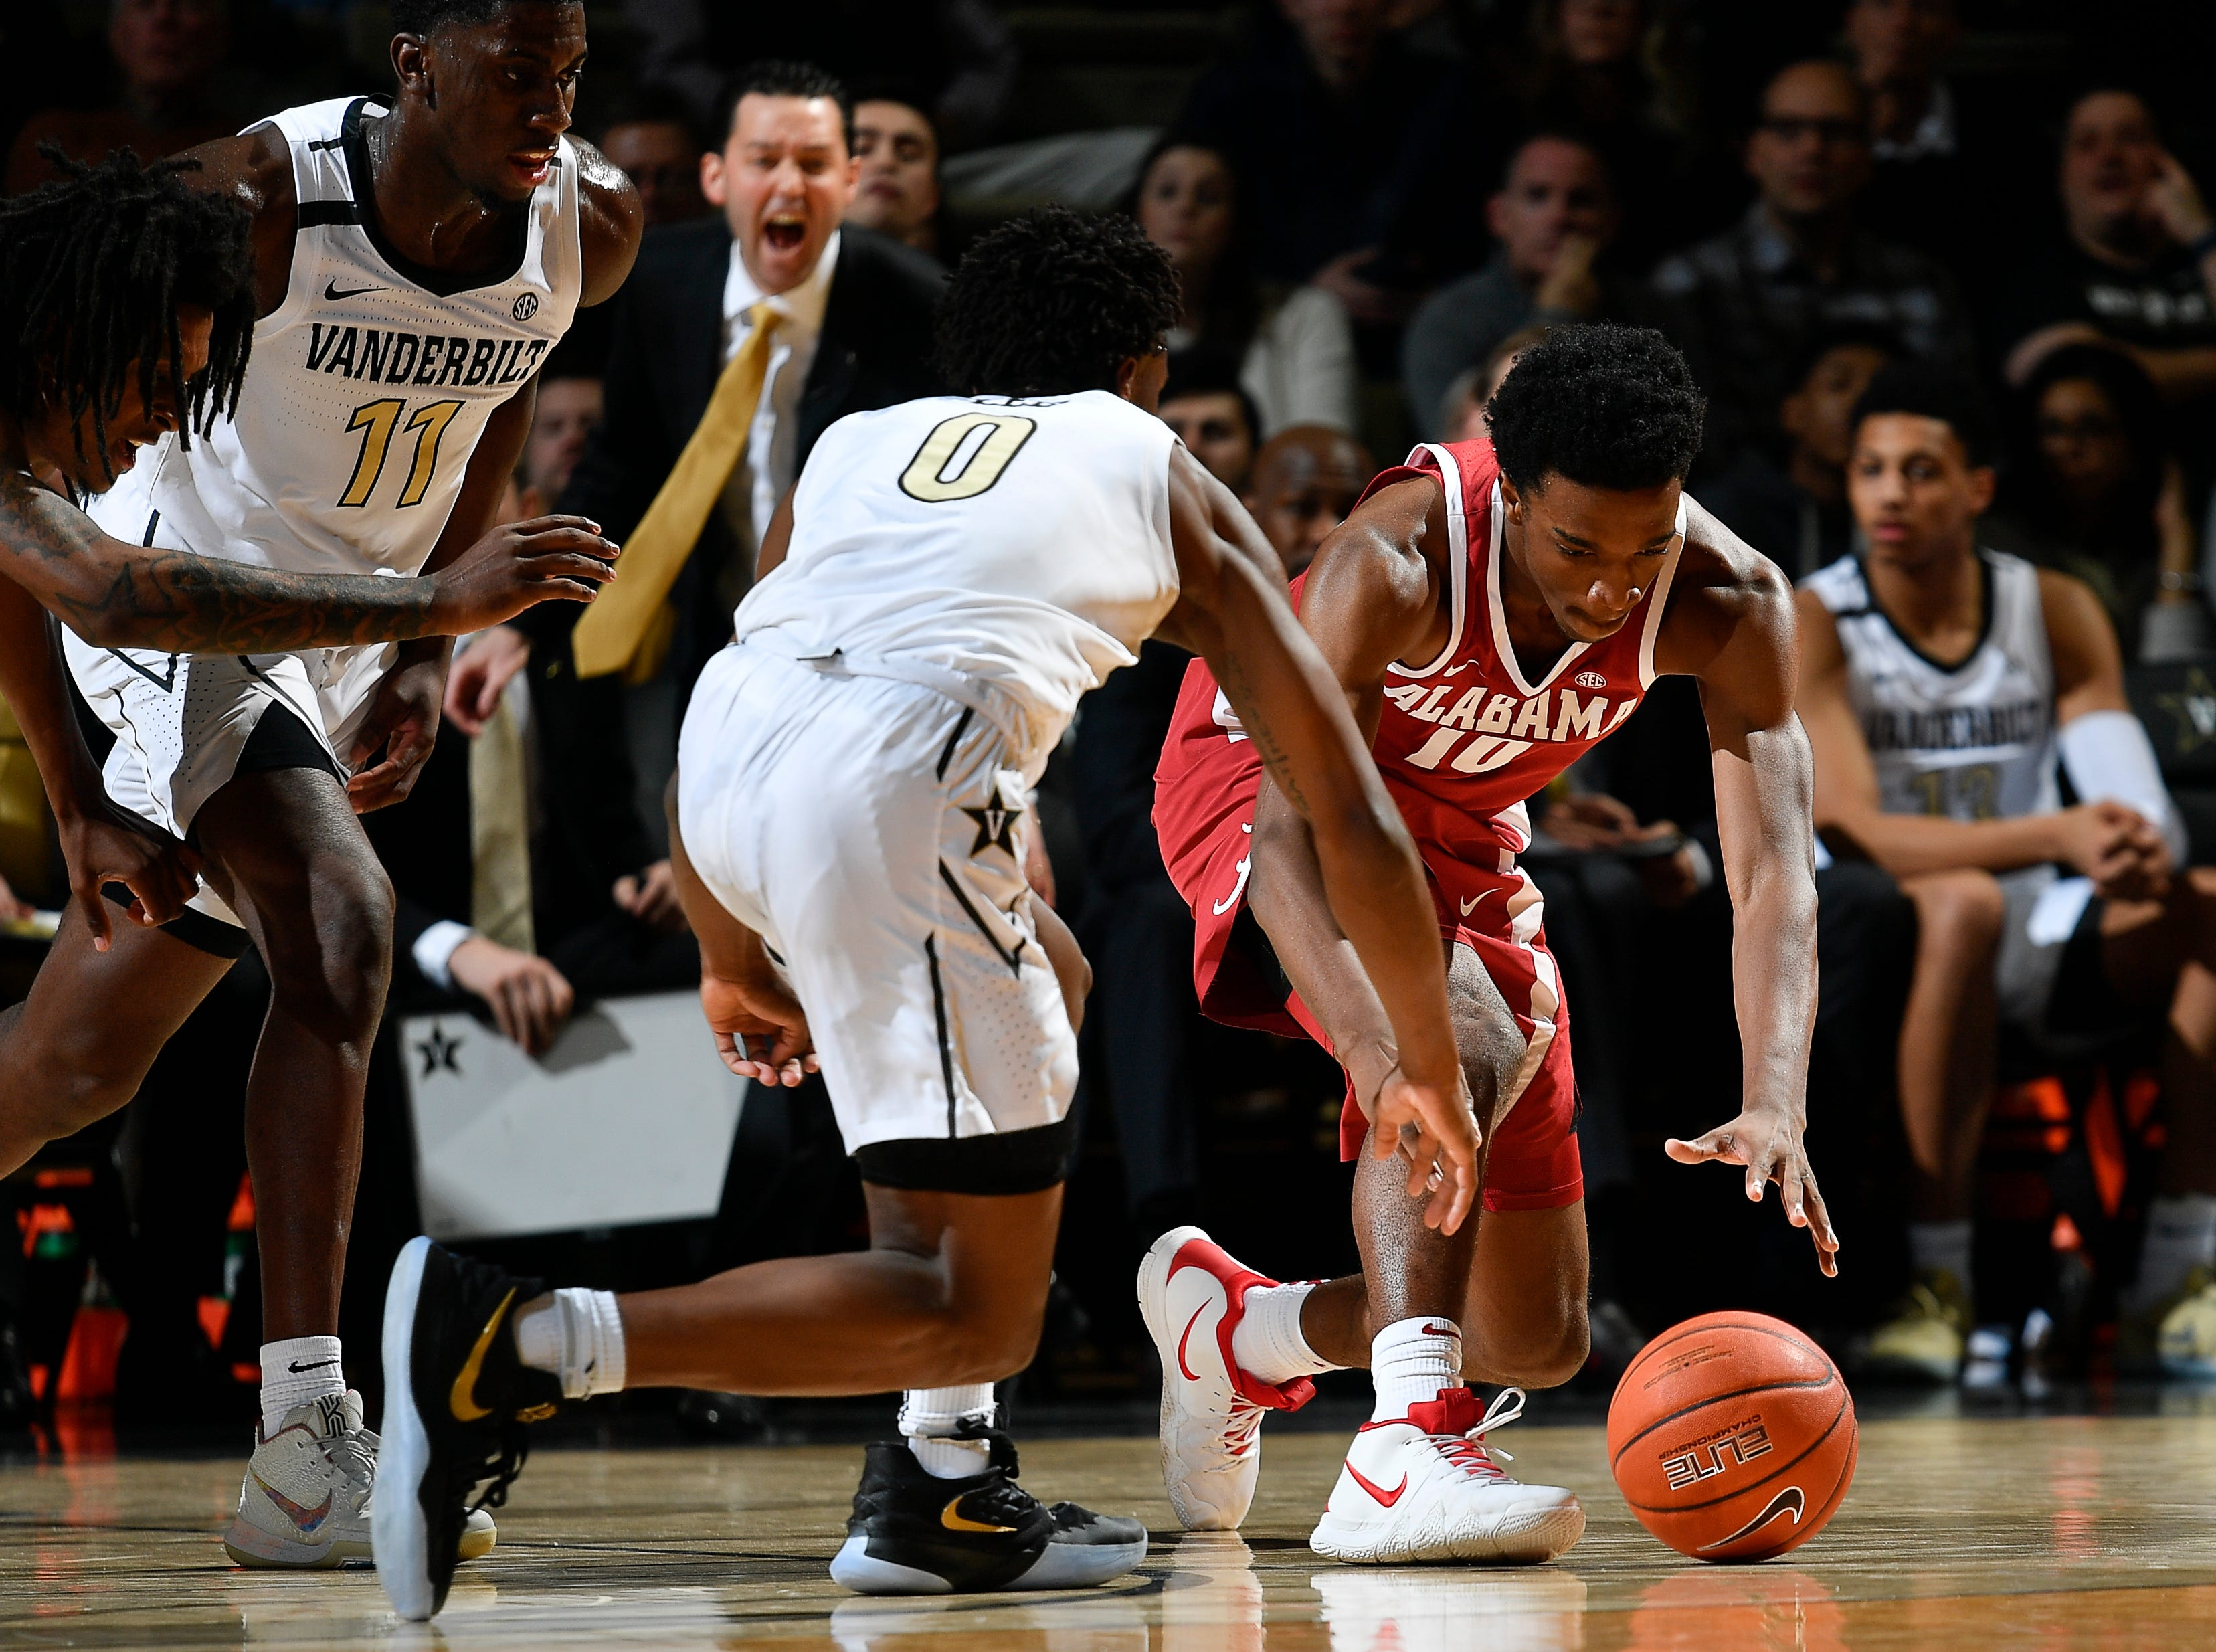 Vanderbilt guard Saben Lee (0) and Alabama guard Herbert Jones (10) dive for a loose ball during the first half at Memorial Gym Saturday Feb. 9, 2019 in Nashville, Tenn.